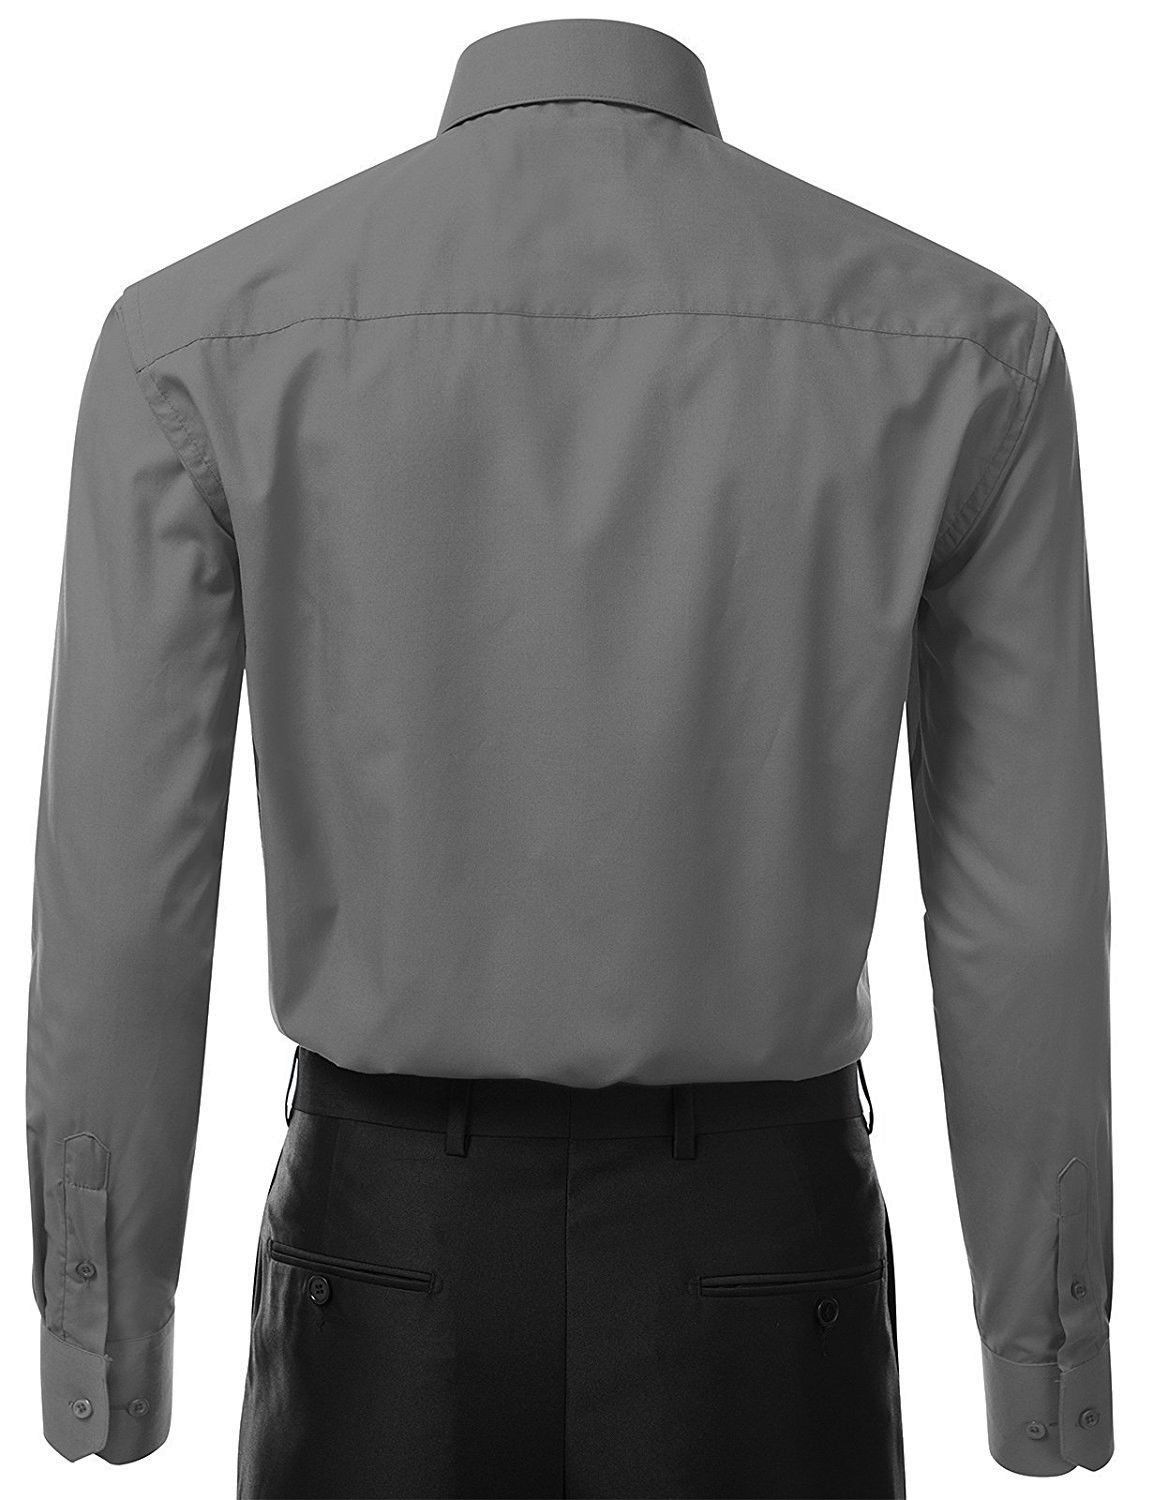 Berlioni-Italy-Men-039-s-Premium-Classic-French-Convertible-Cuff-Solid-Dress-Shirt thumbnail 25